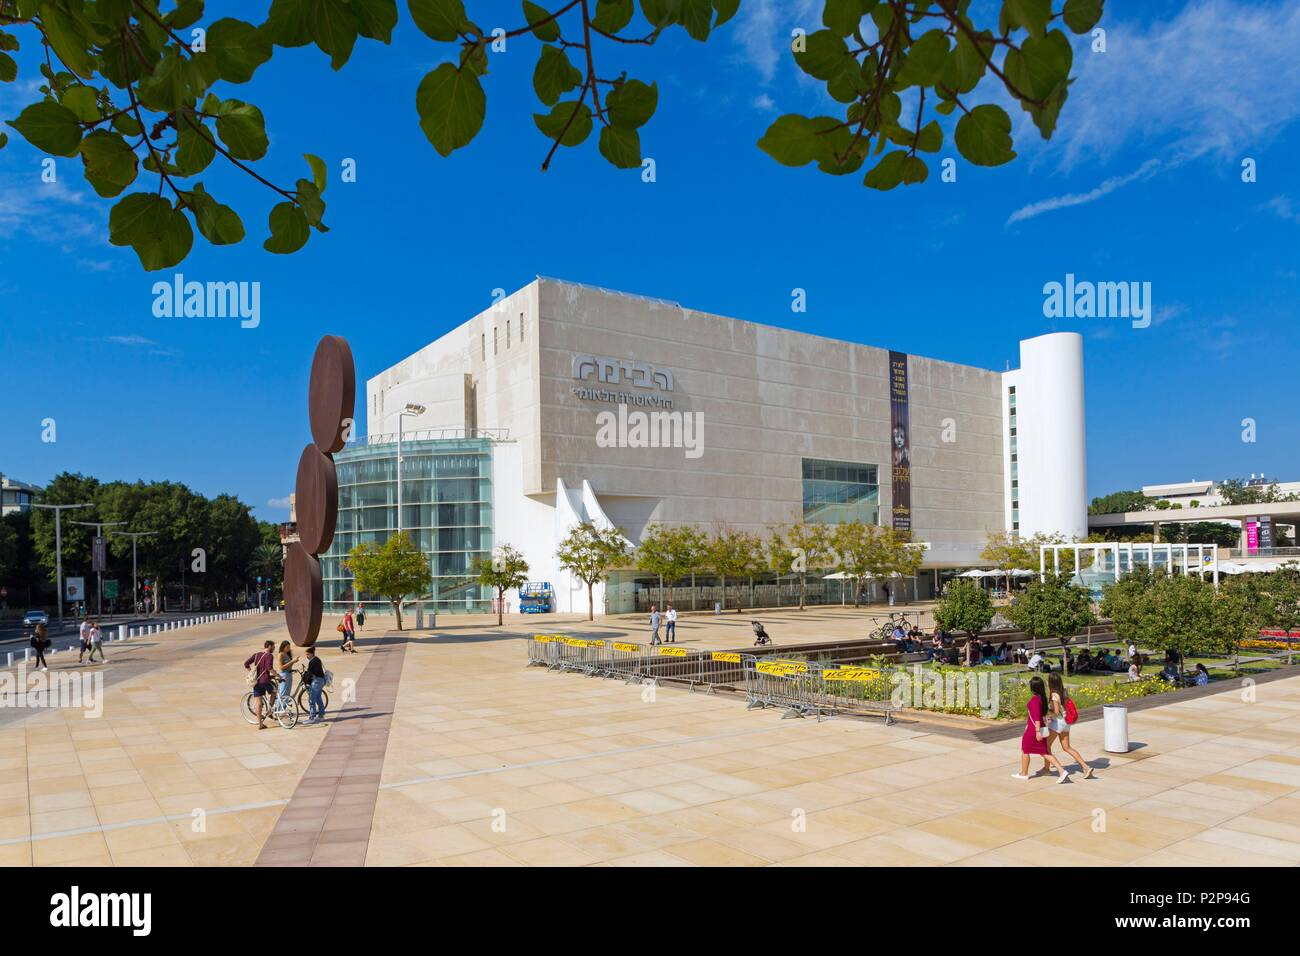 Israel, Tel Aviv-Jaffa, Tel-Aviv, the city center, Habima Square and the Habima Theater, the national theater of Israel, an expression of the spirit of the Jewish people with a particular focus on Hebrew culture and language - Stock Image